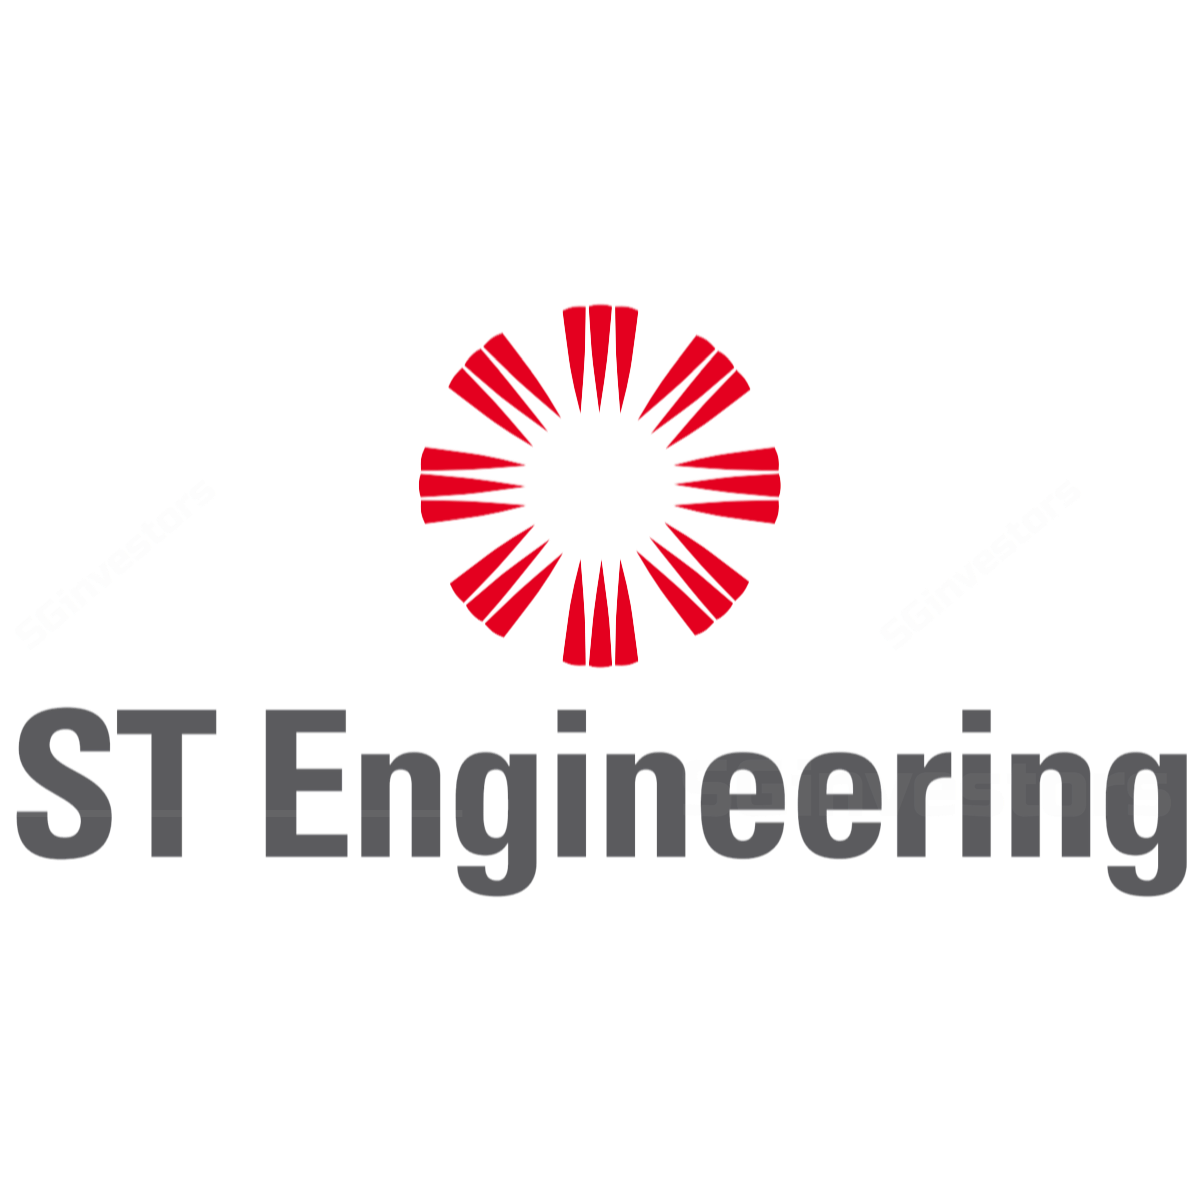 ST ENGINEERING - OCBC Investment 2018-05-11: Stability Built Upon Diversified Portfolio